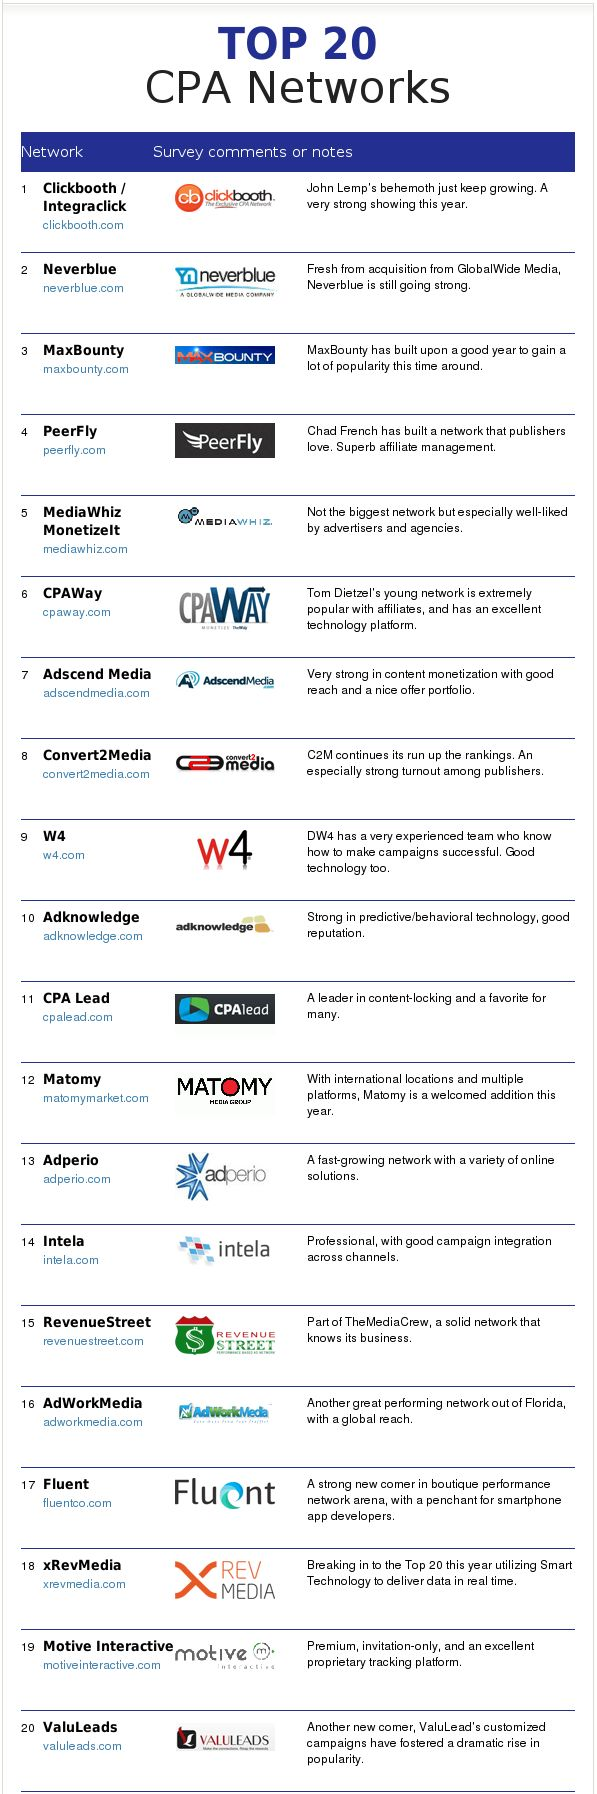 #TutorBuddies  ---- Top CPA Networks 2013 --- where to communicate with other accounting professionals